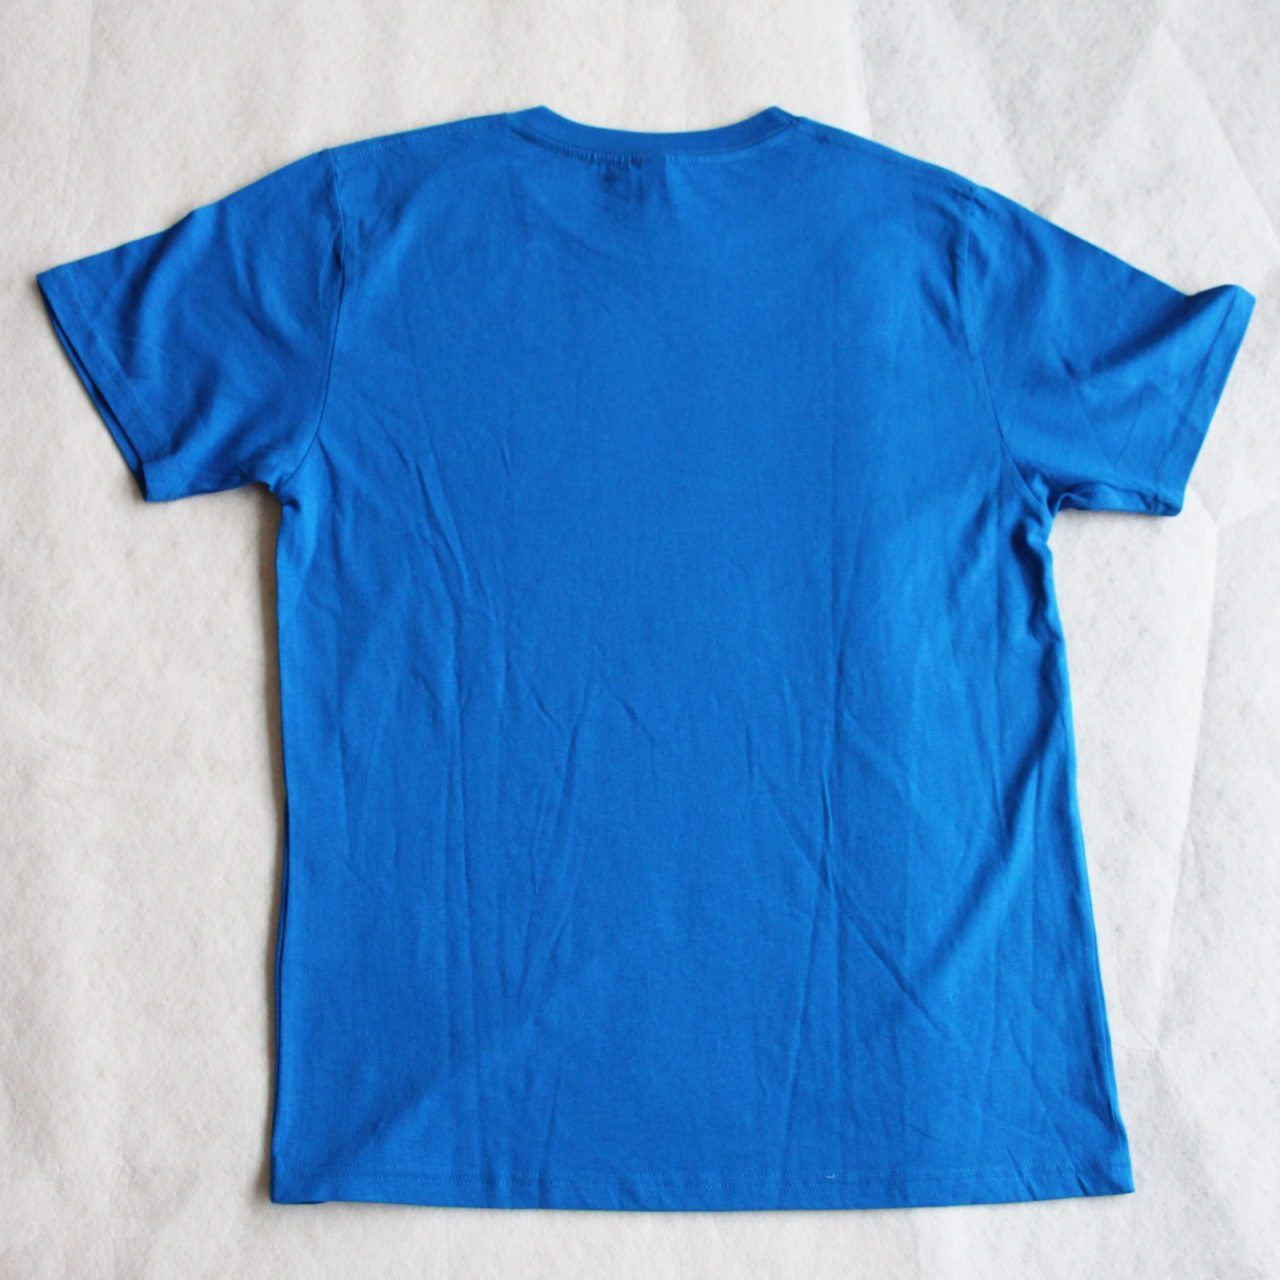 NHS Not Trident T-shirt back